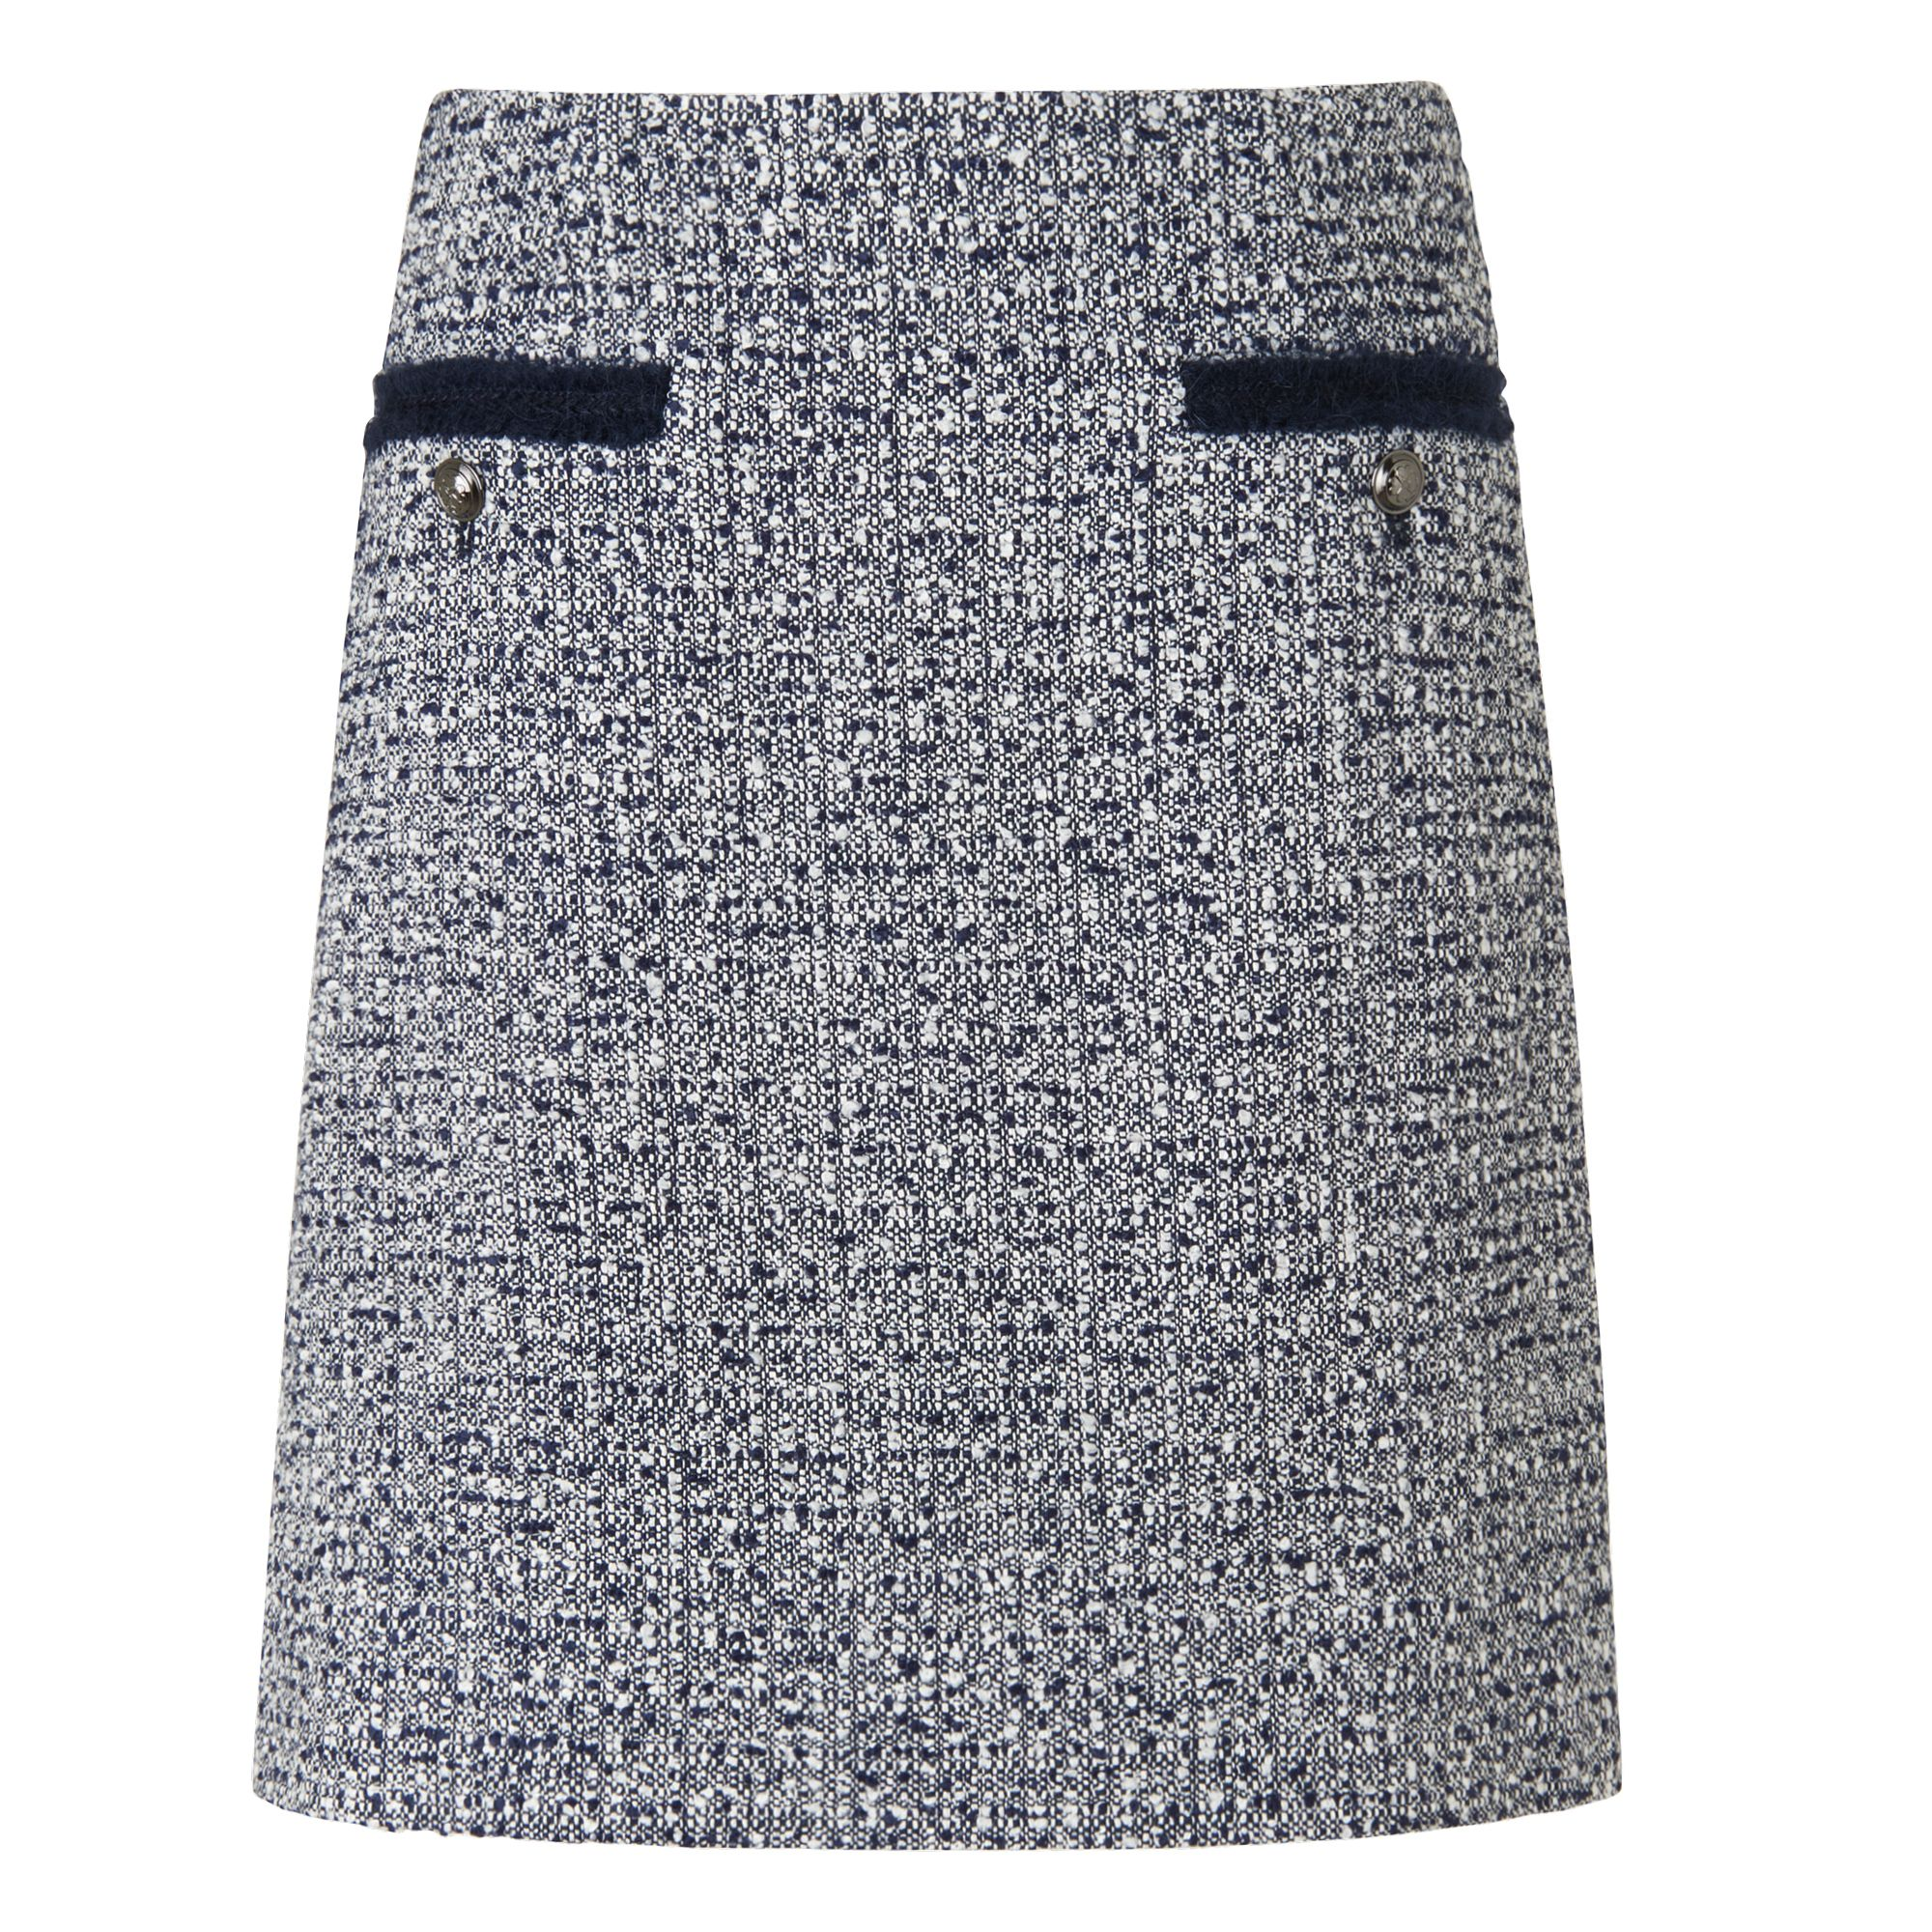 L.K. Bennett Astrala Tweed Skirts, Multi-Coloured